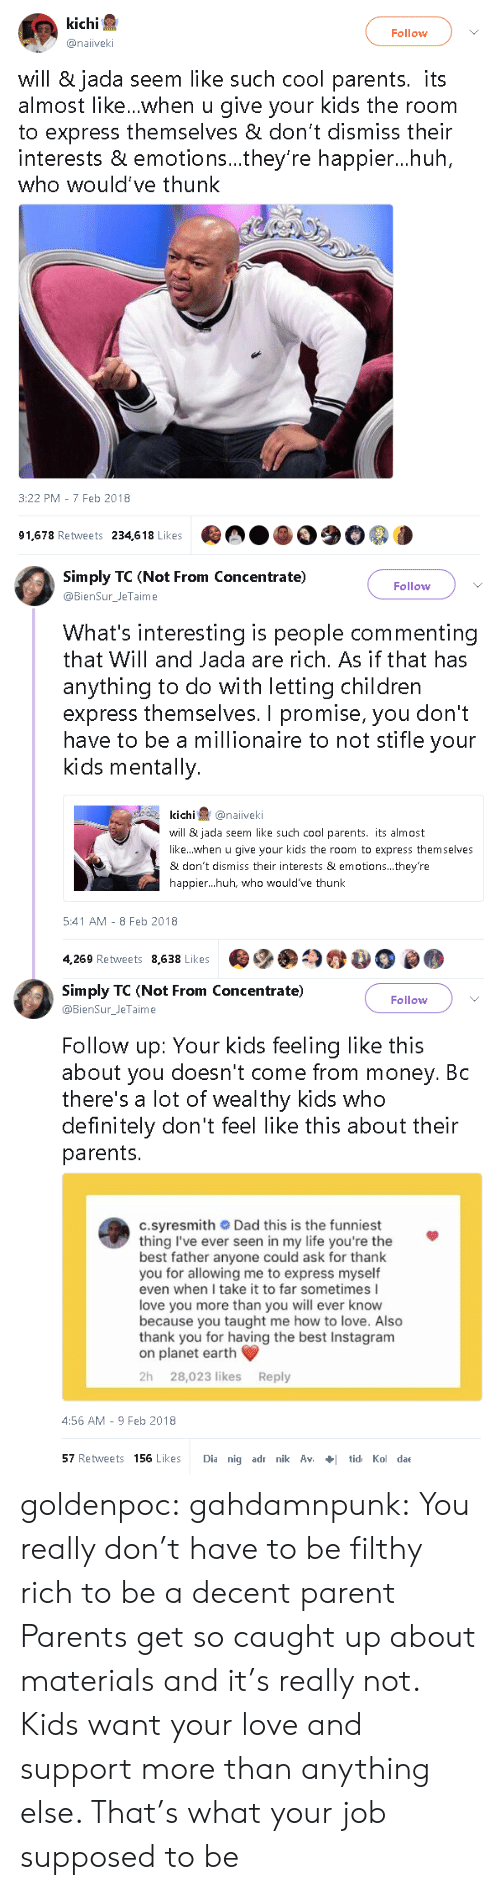 People Commenting: kichi  Follow  @naiiveki  will & jada seem like such cool parents. its  almost like...when u give your kids the room  to express themselves & don't dismiss their  interests & emotions...they're happier...huh  who would've thunk  3:22 PM - 7 Feb 2018  91,678 Retweets 234,618 Likes   Simply TC (Not From Concentrate)  Follow  @BienSur_JeTaime  What's interesting is people commenting  that Will and Jada are rich. As if that has  anything to do with letting children  express themselves. I promise, you don't  have to be a millionaire to not stifle your  kids mentally.  kichi@naiveki  will & jada seem like such cool parents. its almost  like...when u give your kids the room to express themselves  & don't dismiss their interests & emotions... they're  happier...huh, who would've thunk  5:41 AM - 8 Feb 2018  4,269 Retweets 8,638 Likes   Simply TC (Not From Concentrate)  @BienSurJeTaime  Follow  Follow up: Your kids feeling like this  about you doesn't come from money. Bc  there's a lot of wealthy kids who  definitely don't feel like this about their  parents.  c.syresmith Dad this is the funniest  thing I've ever seen in my life you're the  best father anyone could ask for thank  you for allowing me to express myself  even when I take it to far sometimes I  love you more than you will ever know  because you taught me how to love. Also  thank you for having the best Instagram  on planet earth  2h 28,023 likes Reply  4:56 AM-9 Feb 2018  57 Retweets 156 Likes Dia nig adr nik Avtid Ko dae goldenpoc: gahdamnpunk: You really don't have to be filthy rich to be a decent parent   Parents get so caught up about materials and it's really not. Kids want your love and support more than anything else. That's what your job supposed to be